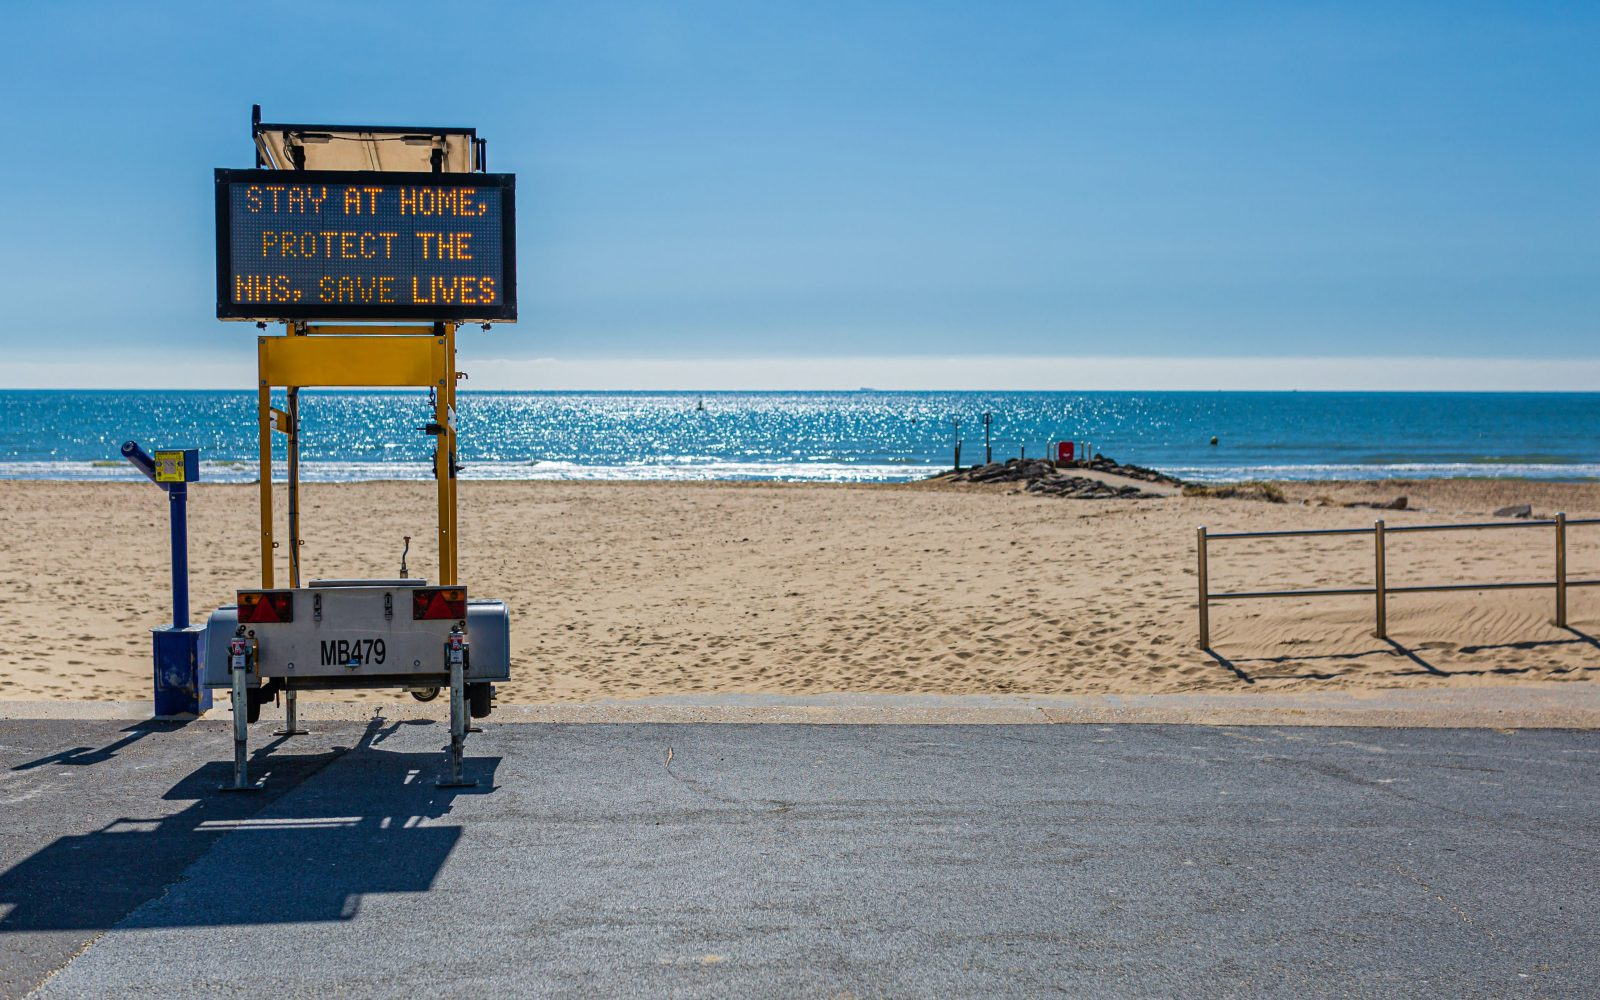 Branksome Chine Beach, Poole, Dorset, UK during COVID-19 - 1st April 2020. Image: Adobe/Drax Electric Insights.